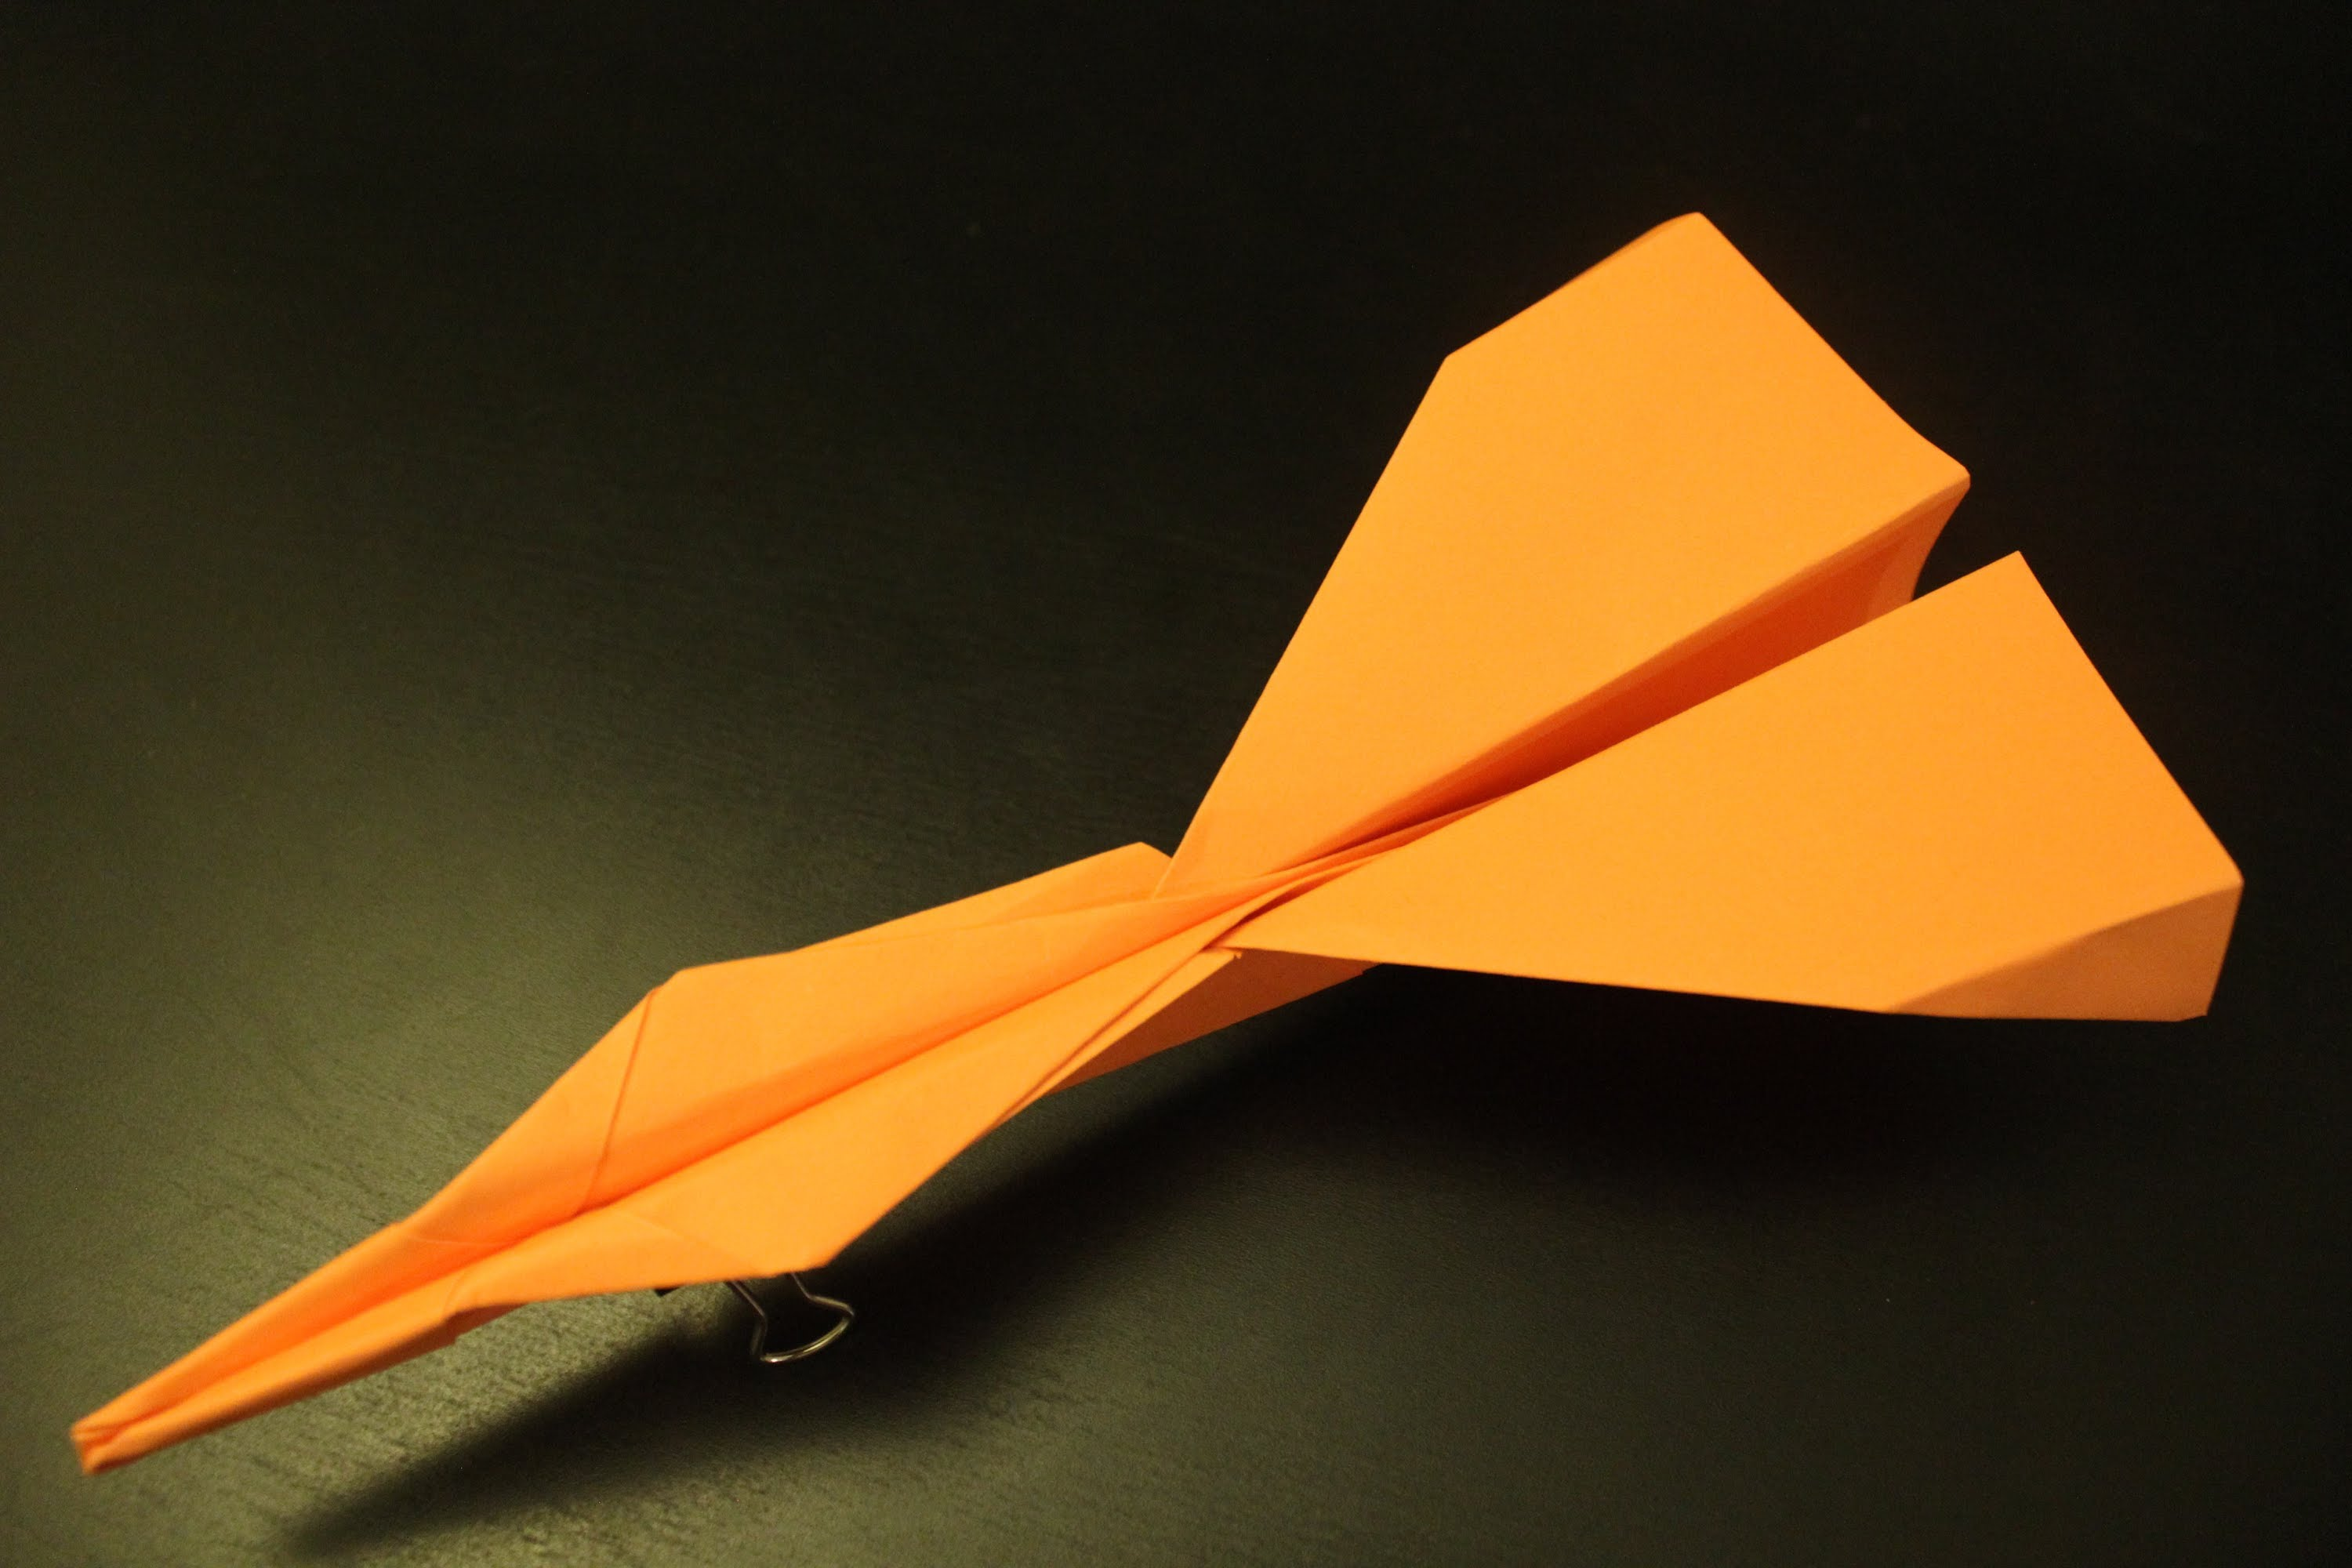 The Spyder – paper airplane